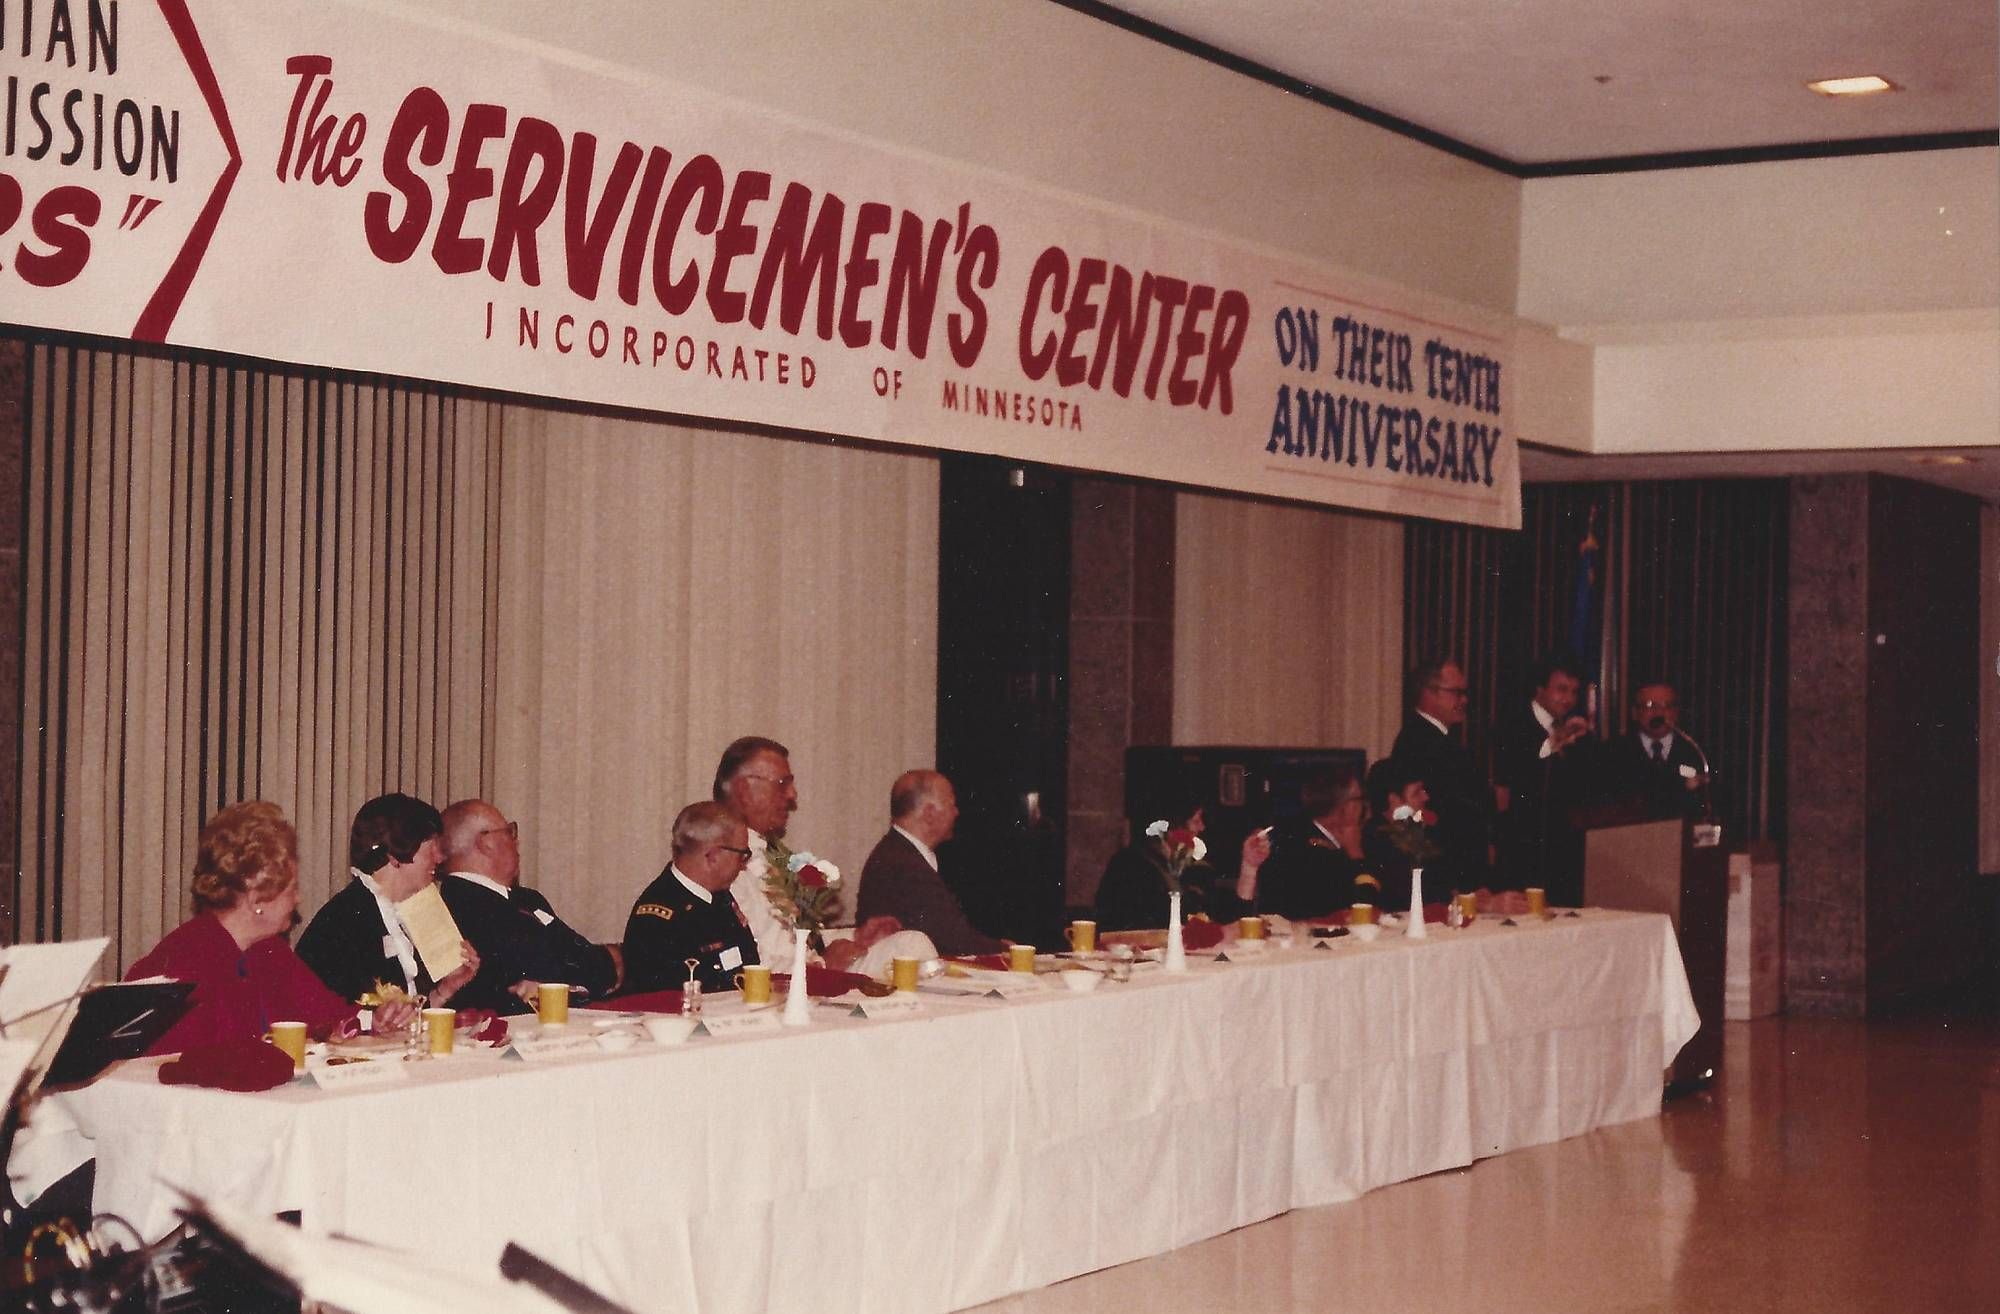 People seated at a long table with a white table cloth, looking towards a podium with a man speaking.